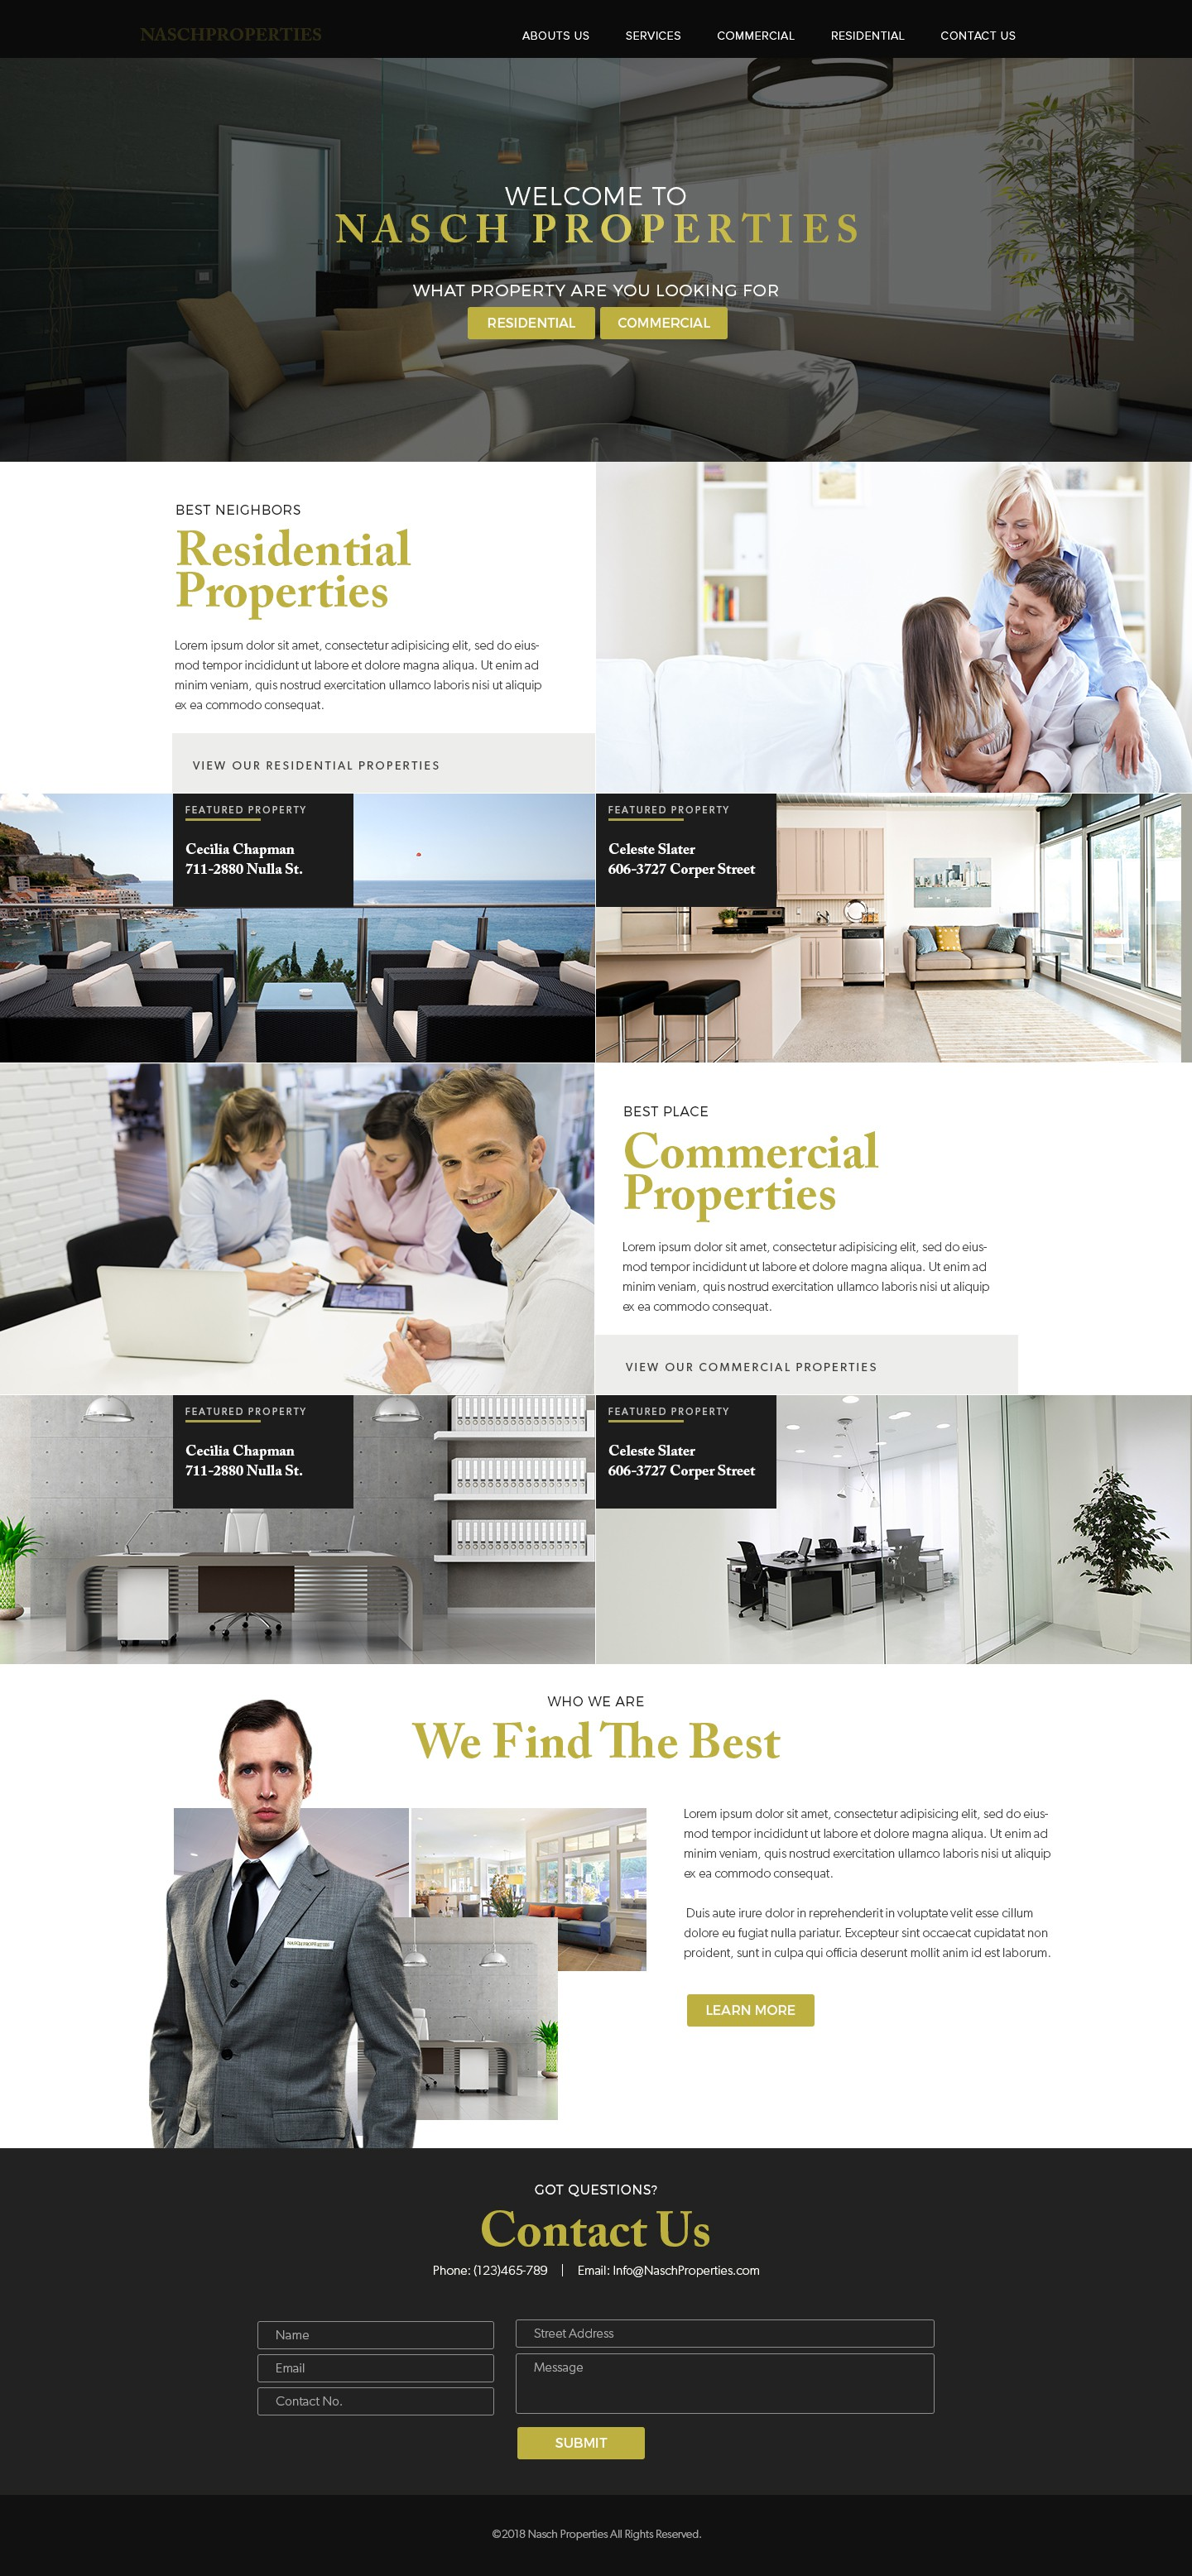 Residential & Commercial Property Management (NOT just a typical Real Estate listing site)